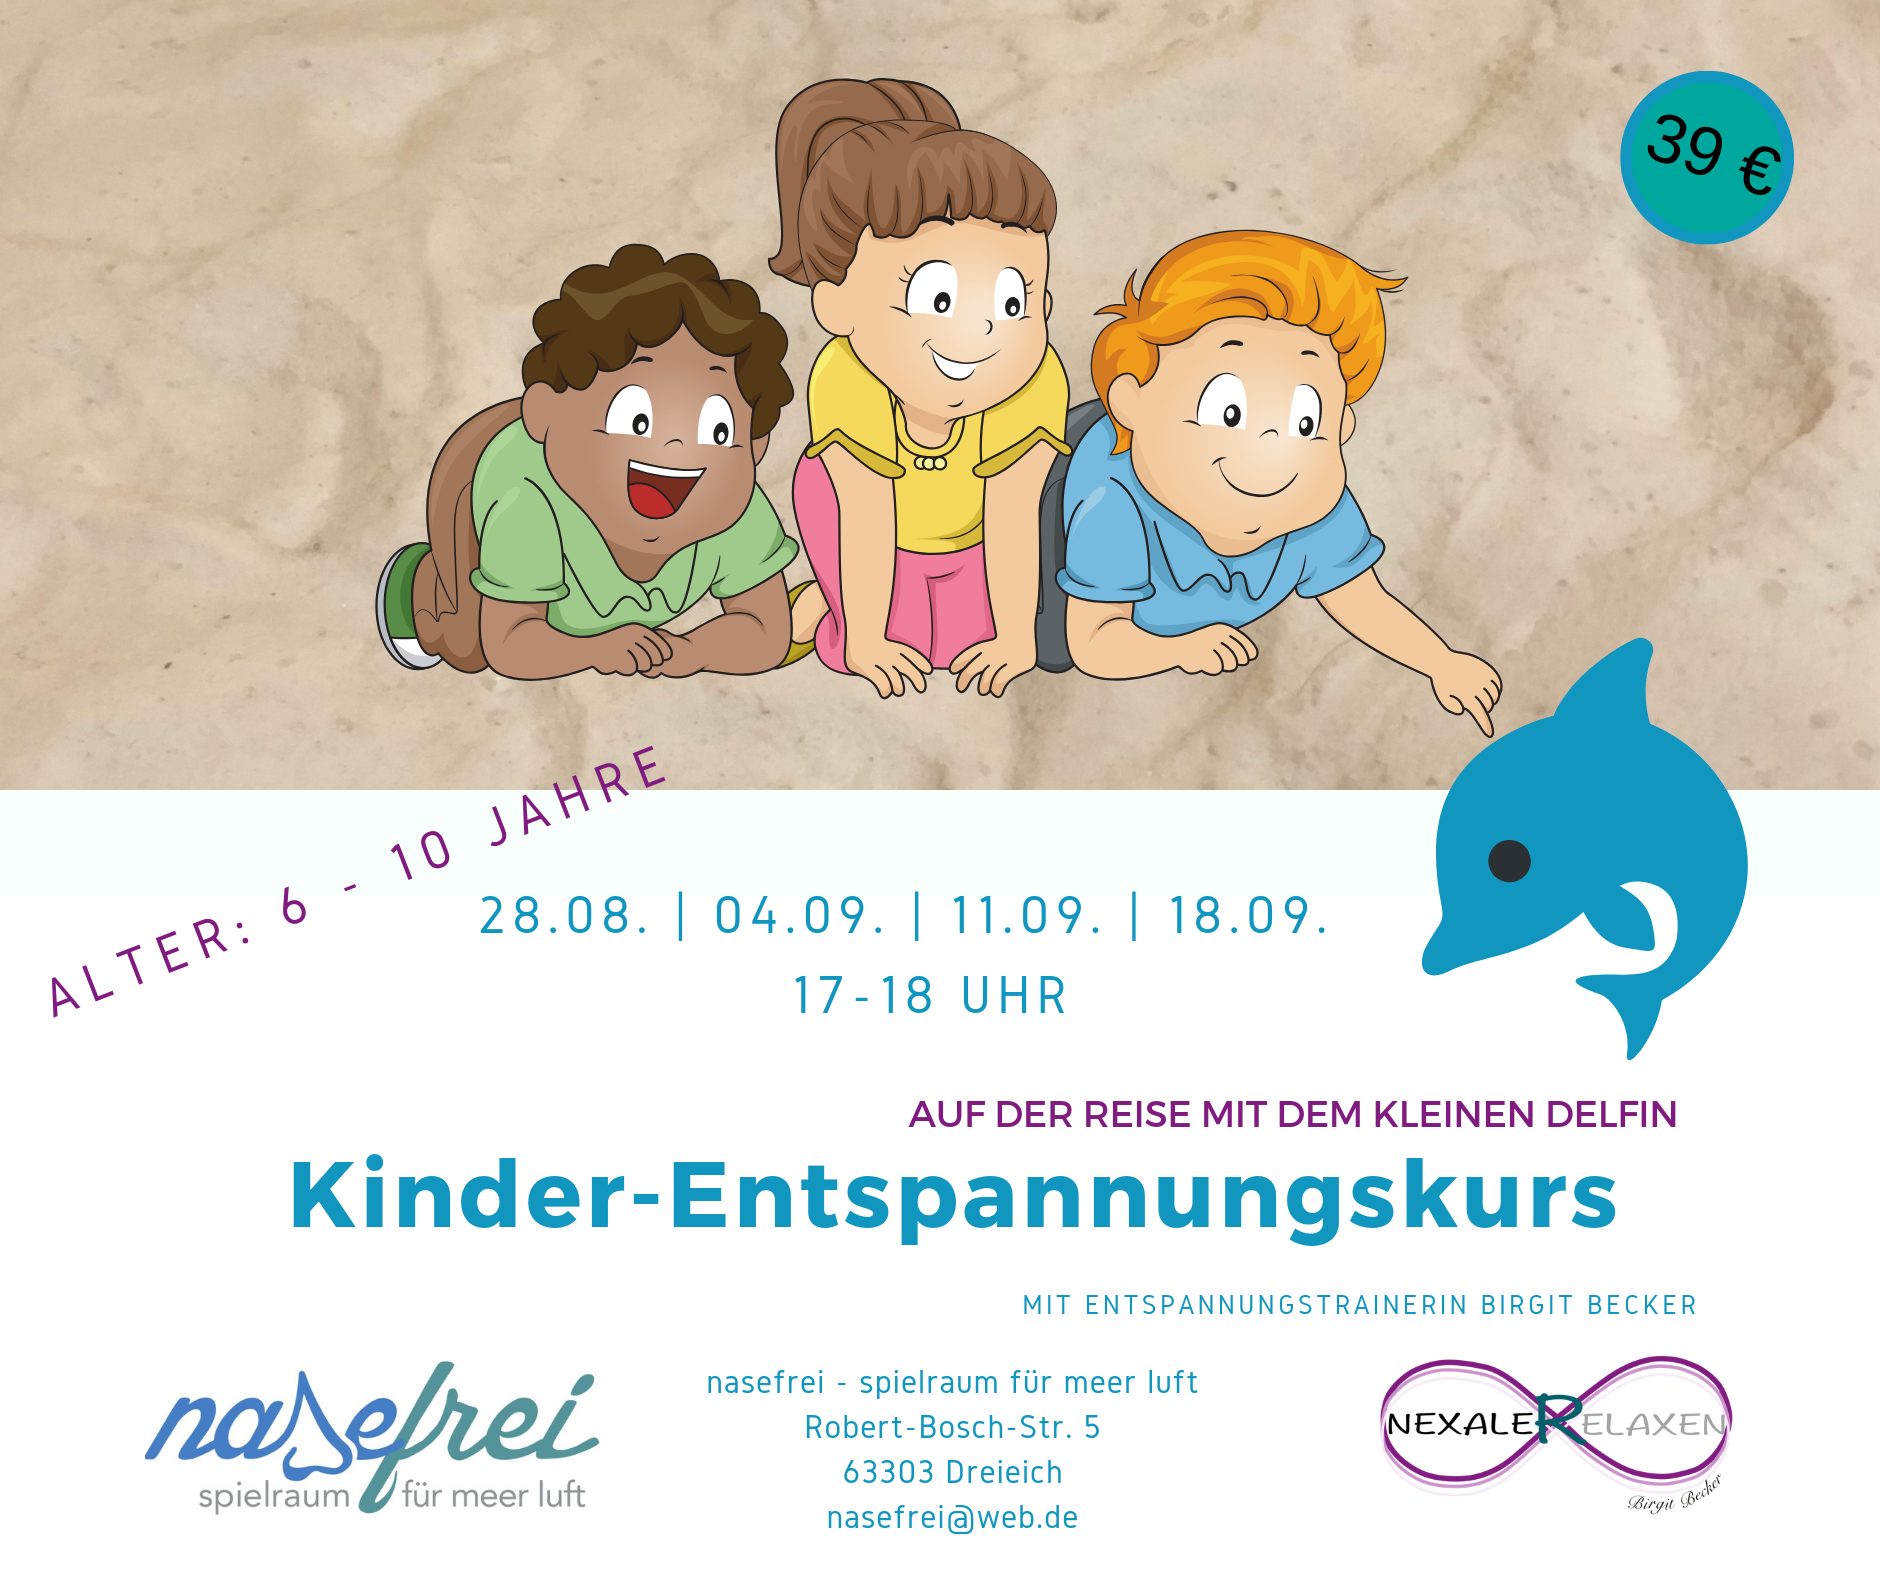 Kinder-Entspannungskurs  August/September 2019 @ Nasefrei